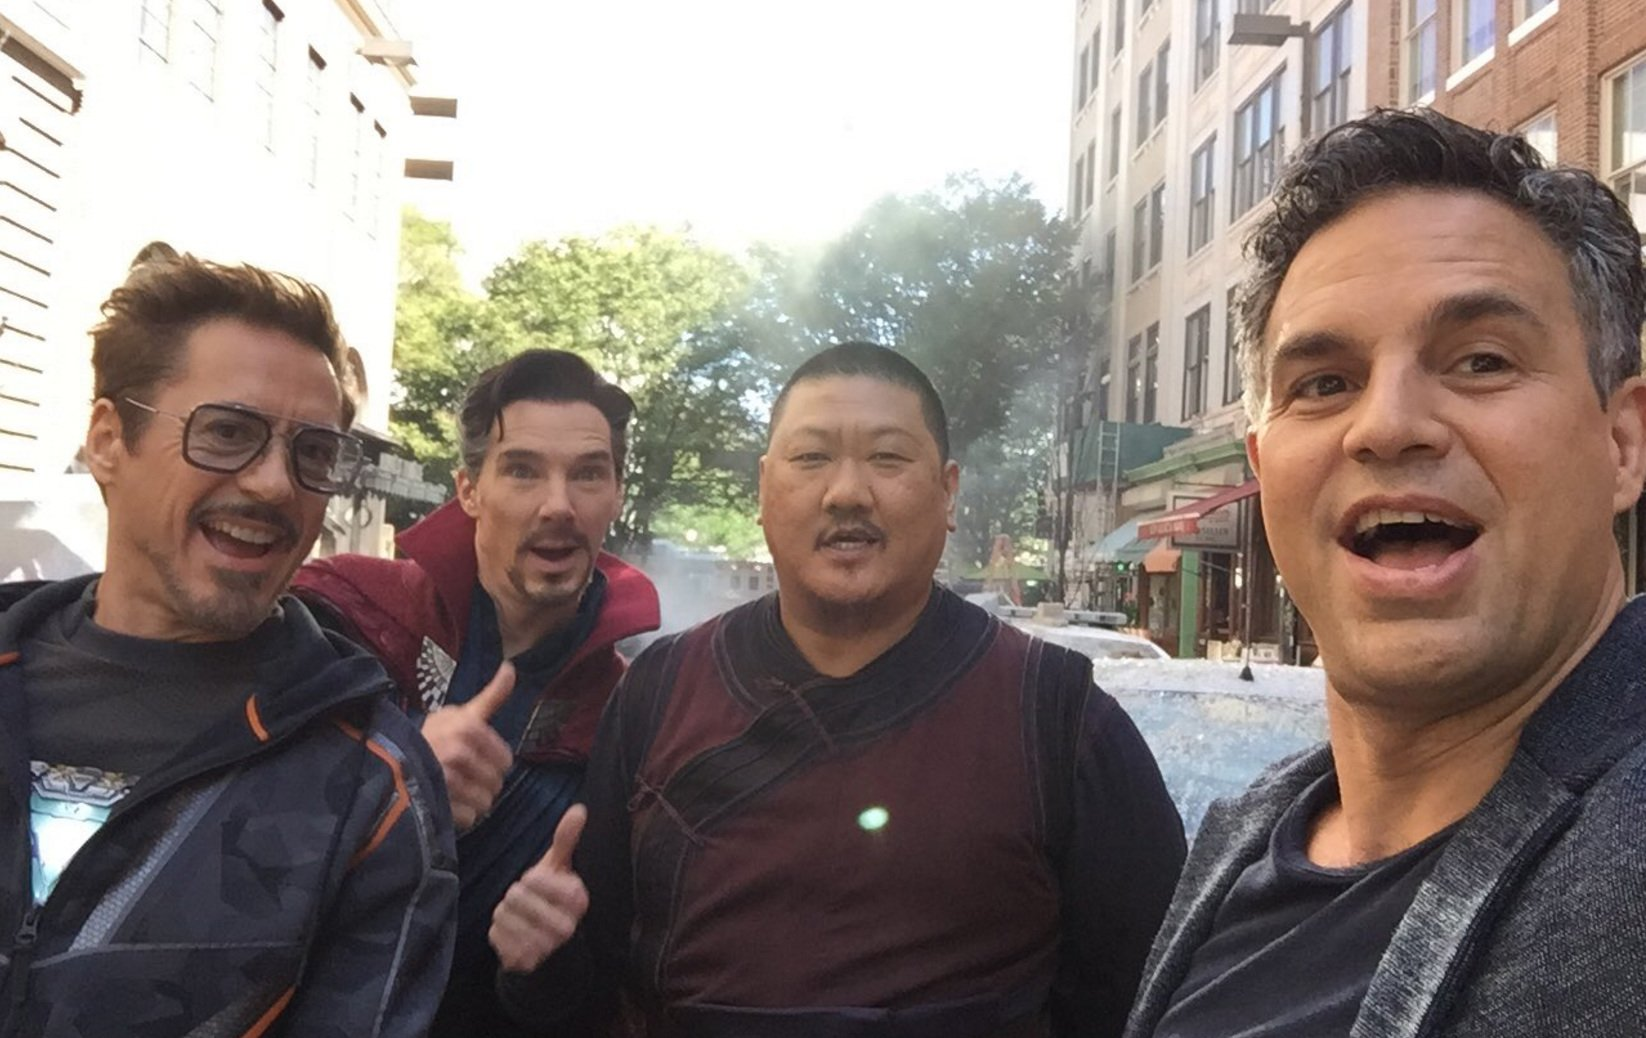 Another Set Photo For Avengers: Infinity War Reunites Marvel's Lunch Buddies